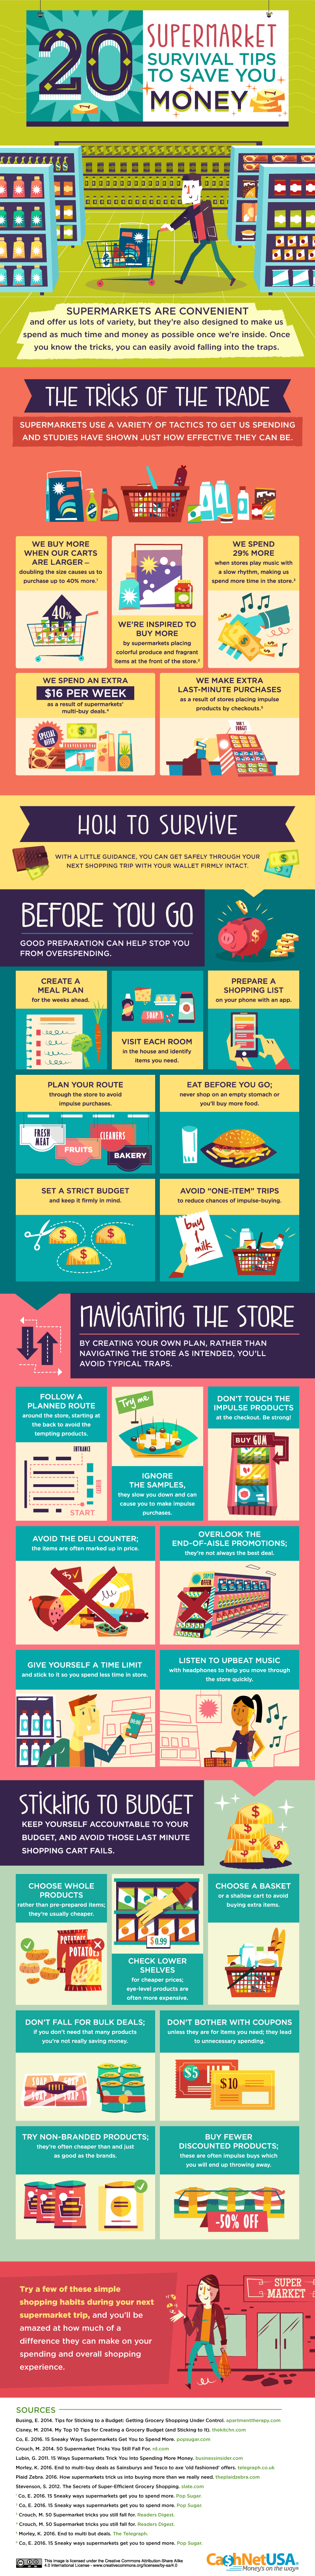 20 Supermarket Survival Tips To Save You Money #Infographic